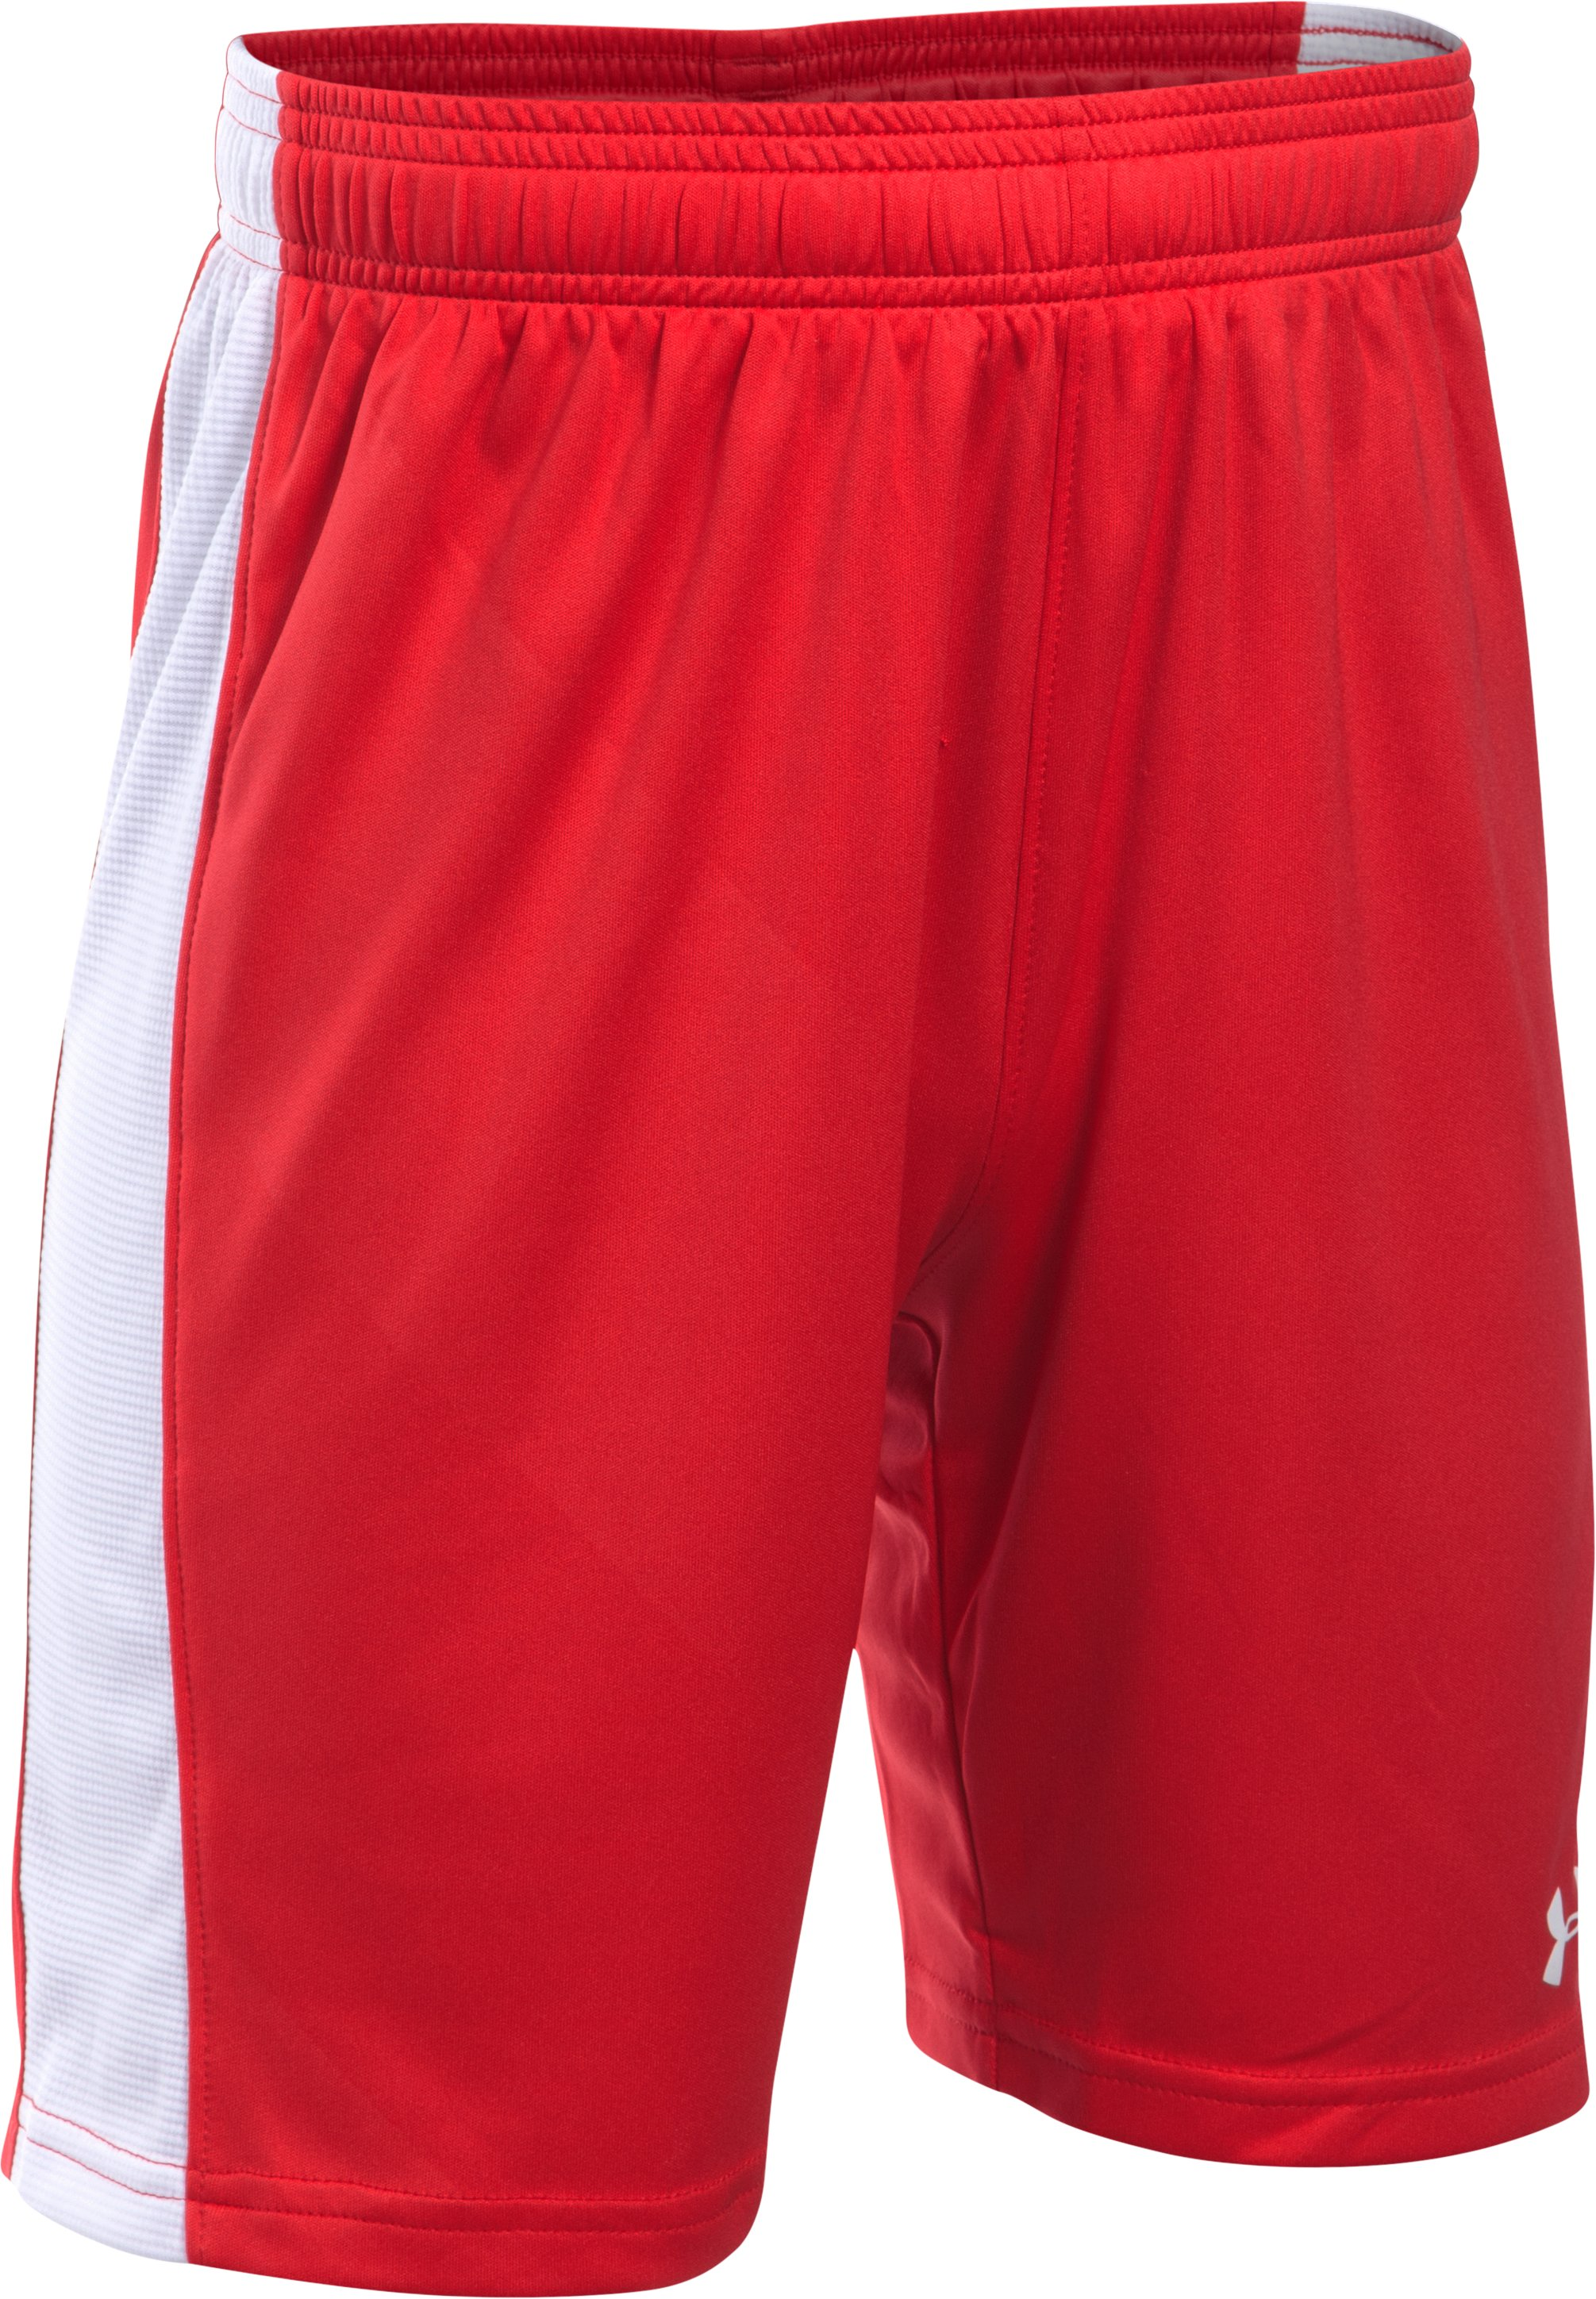 Boys' UA Re-Fixture Soccer Shorts, Red